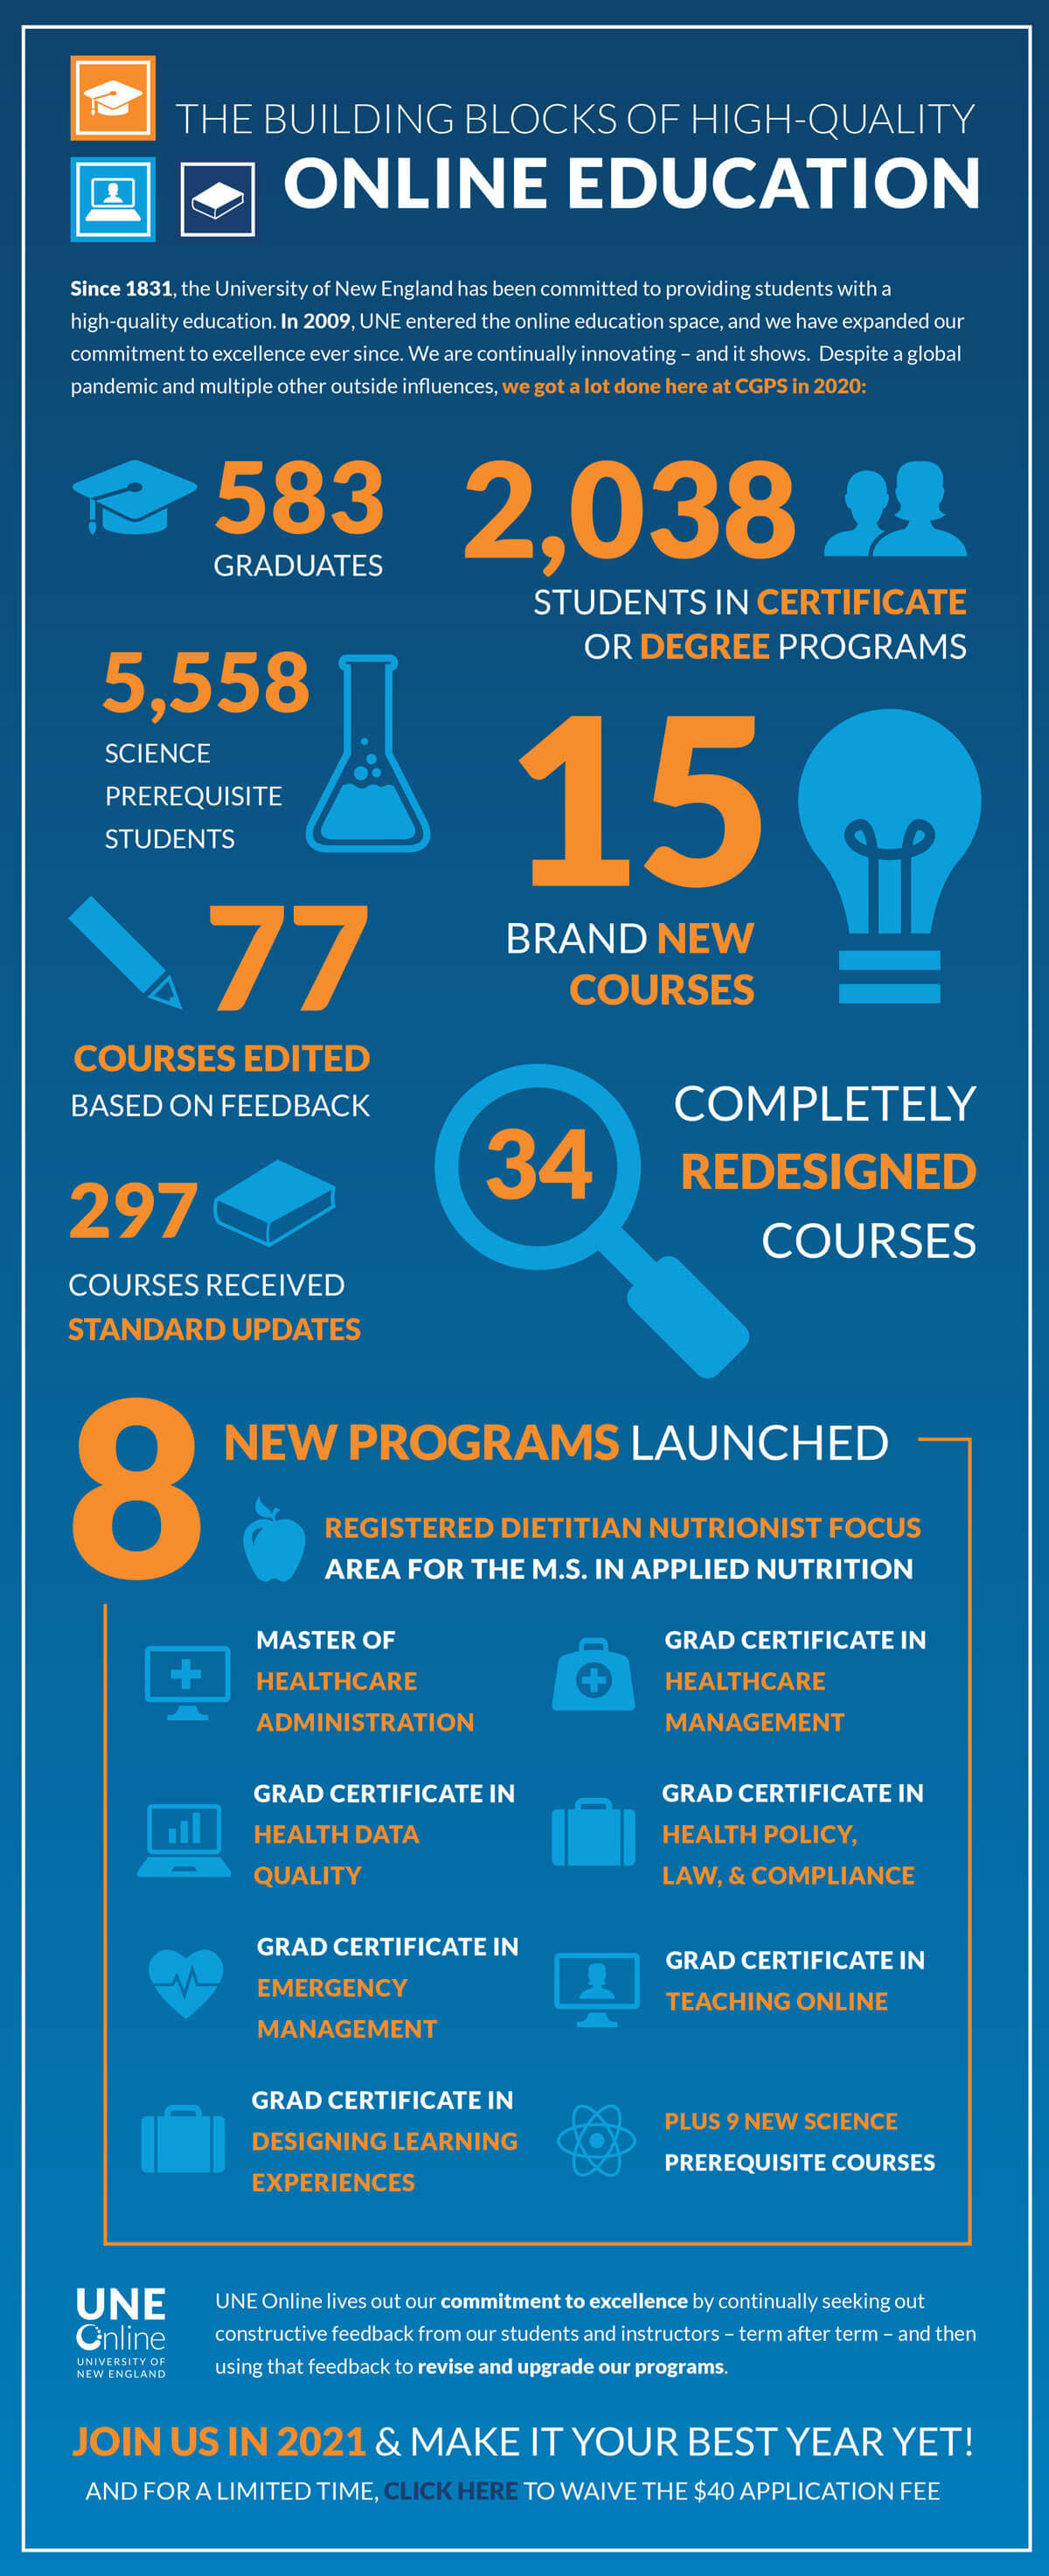 UNE Online Achievements 2020 Infographic – committed to high-quality online education